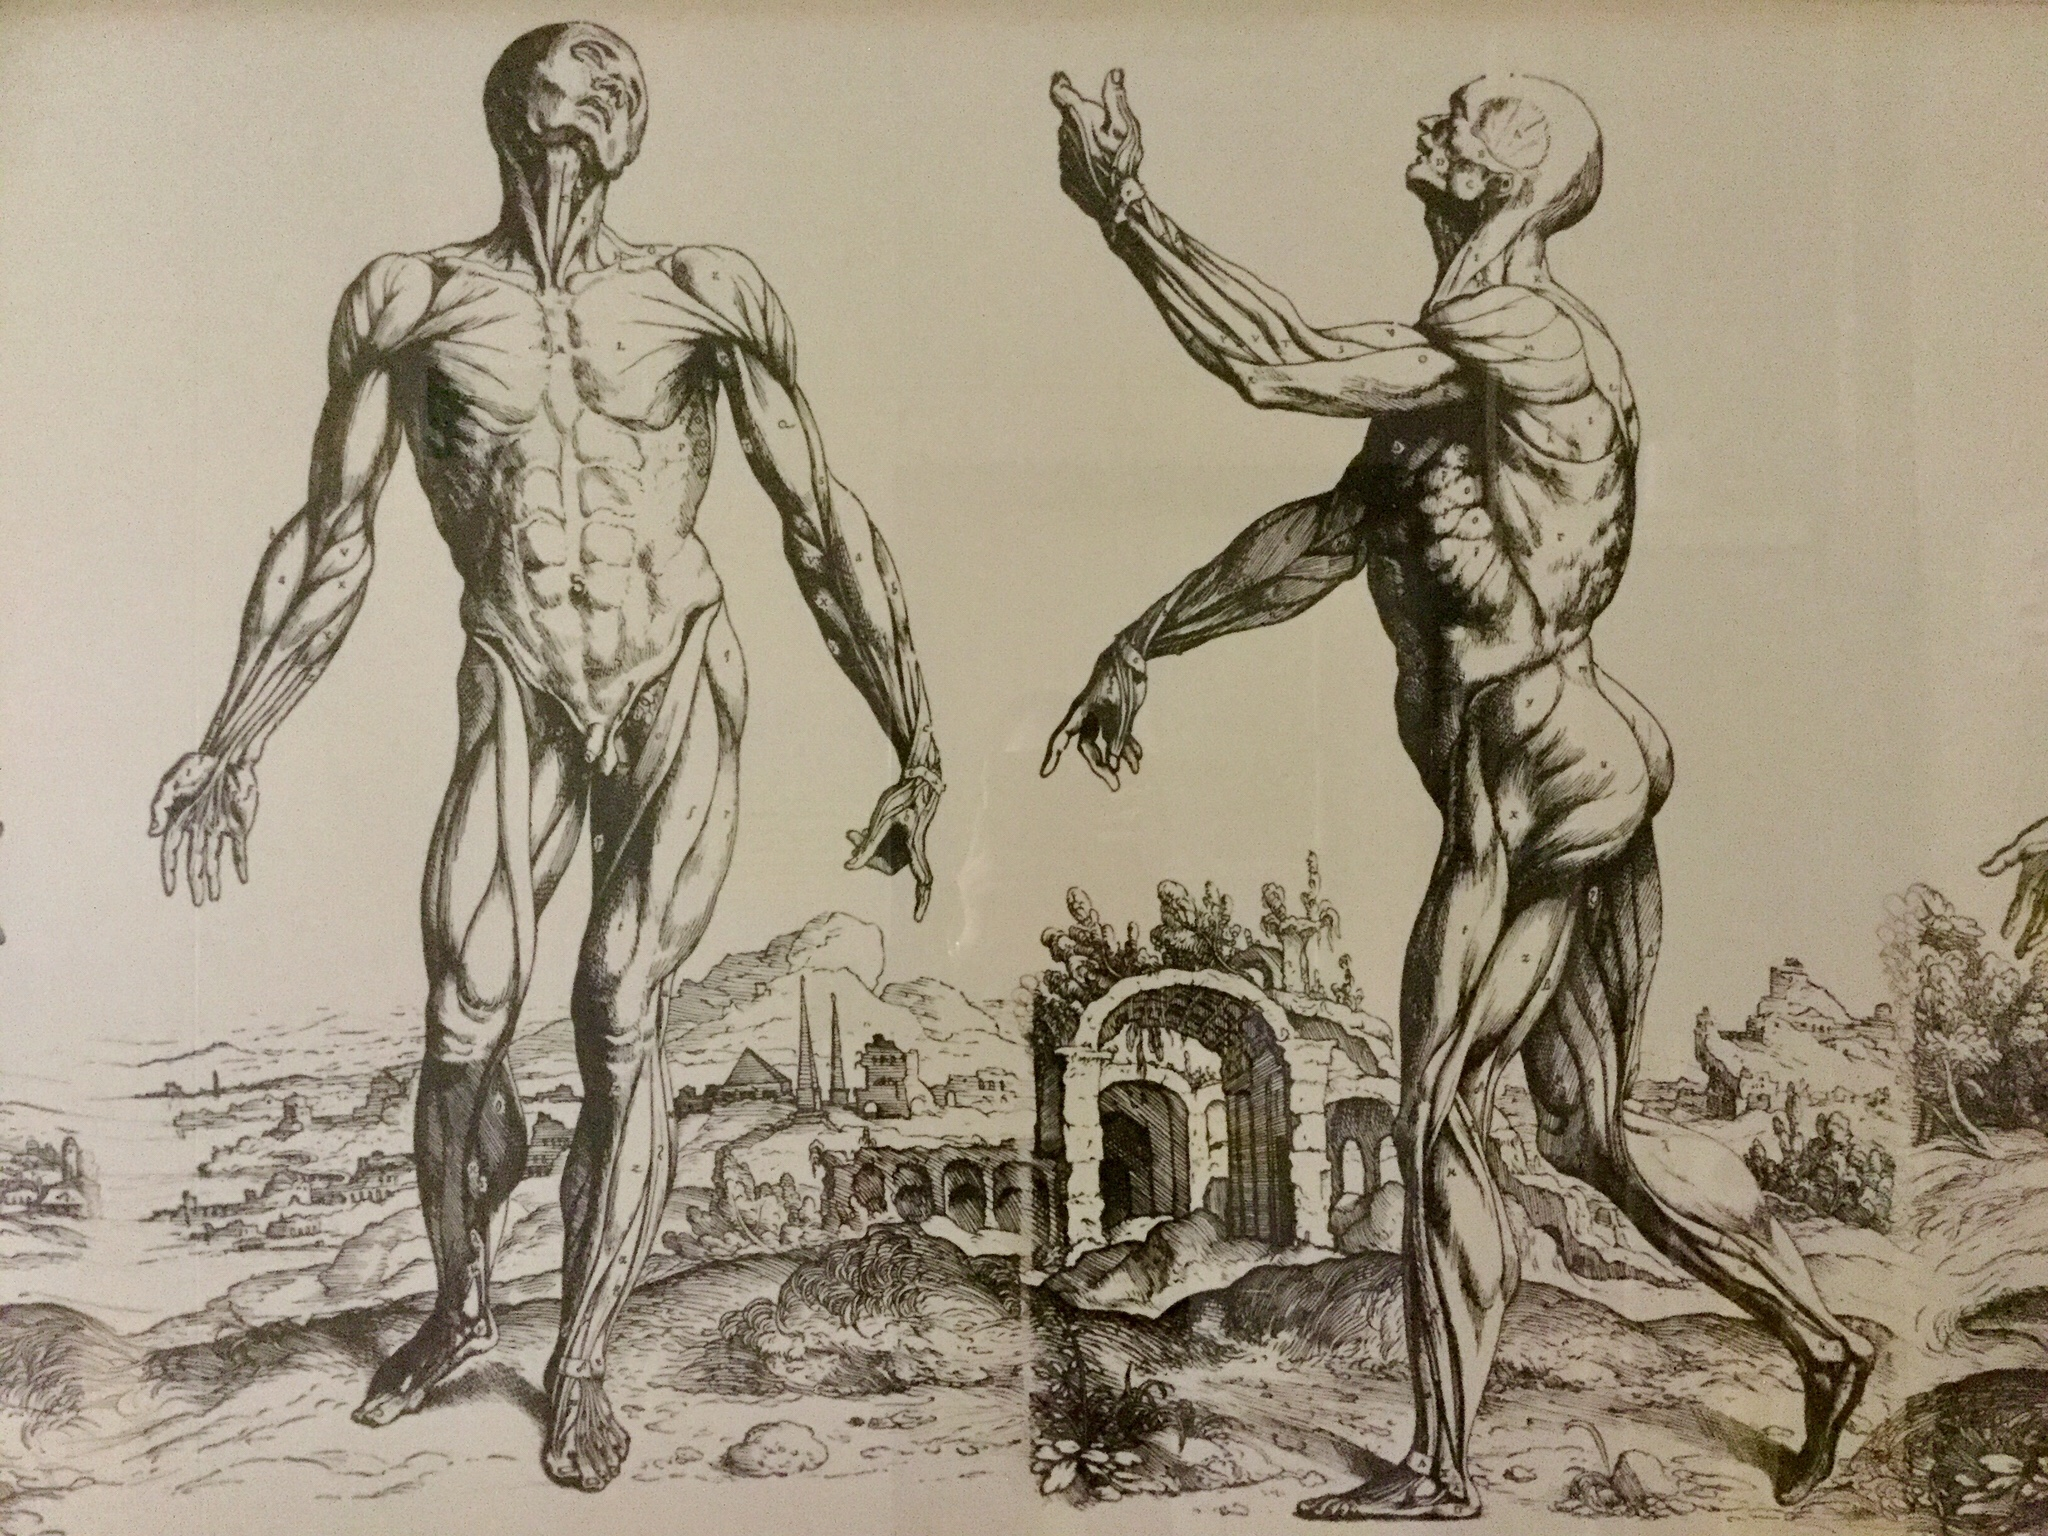 Detail of an illustration repoduced from De Humani Corporis... by Andreas Vesalius, 1543, Anatomical Museum collection, Old Medical School, University of Edinburgh, 2018 Amy Cools